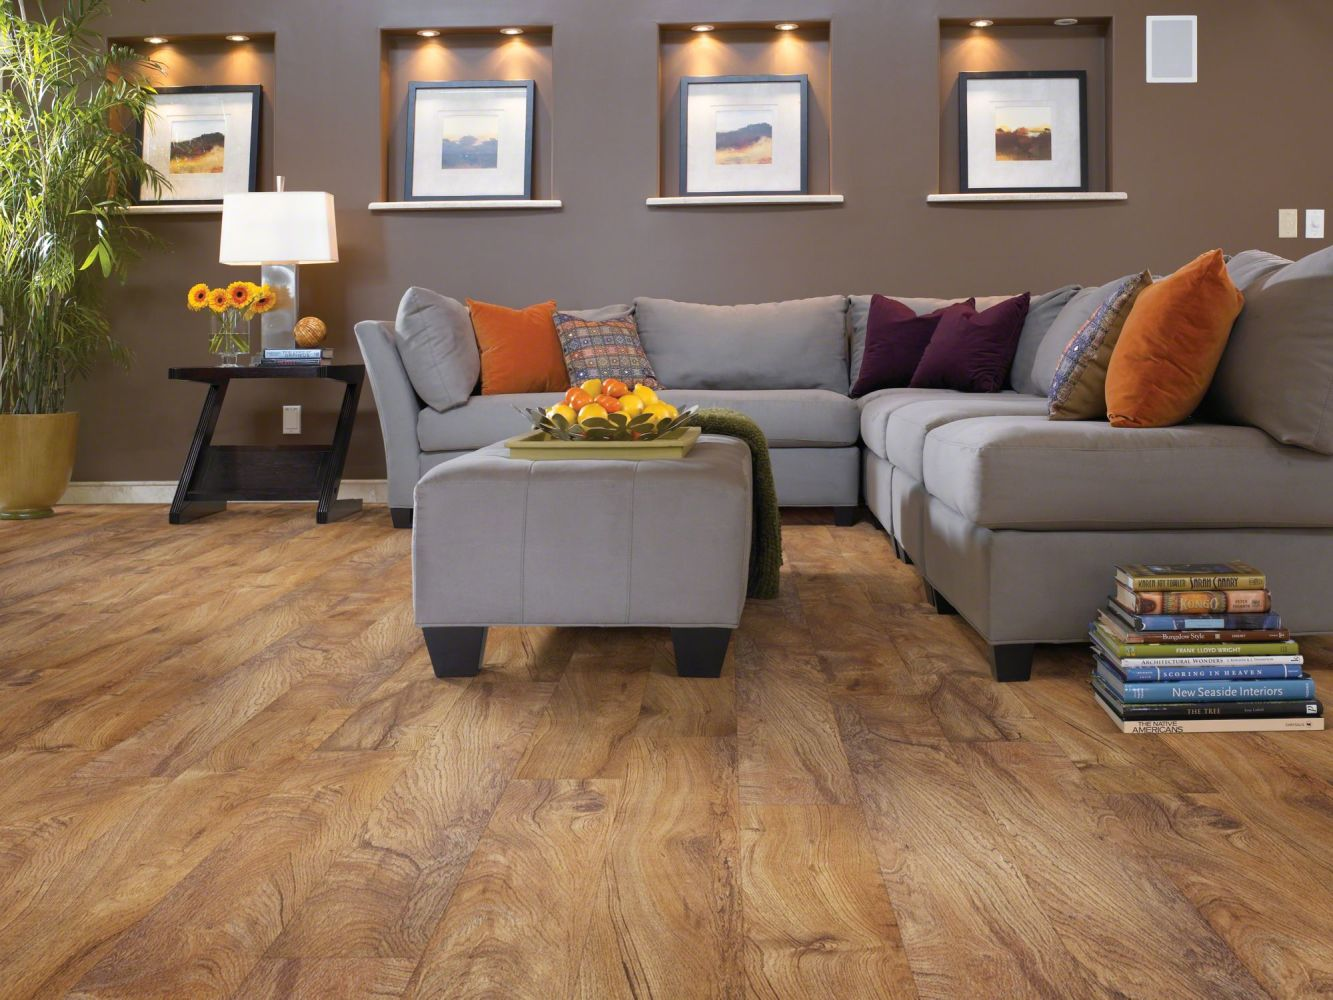 Shaw Floors Vinyl Property Solutions Cameron Plus Tropic 00600_VPS81